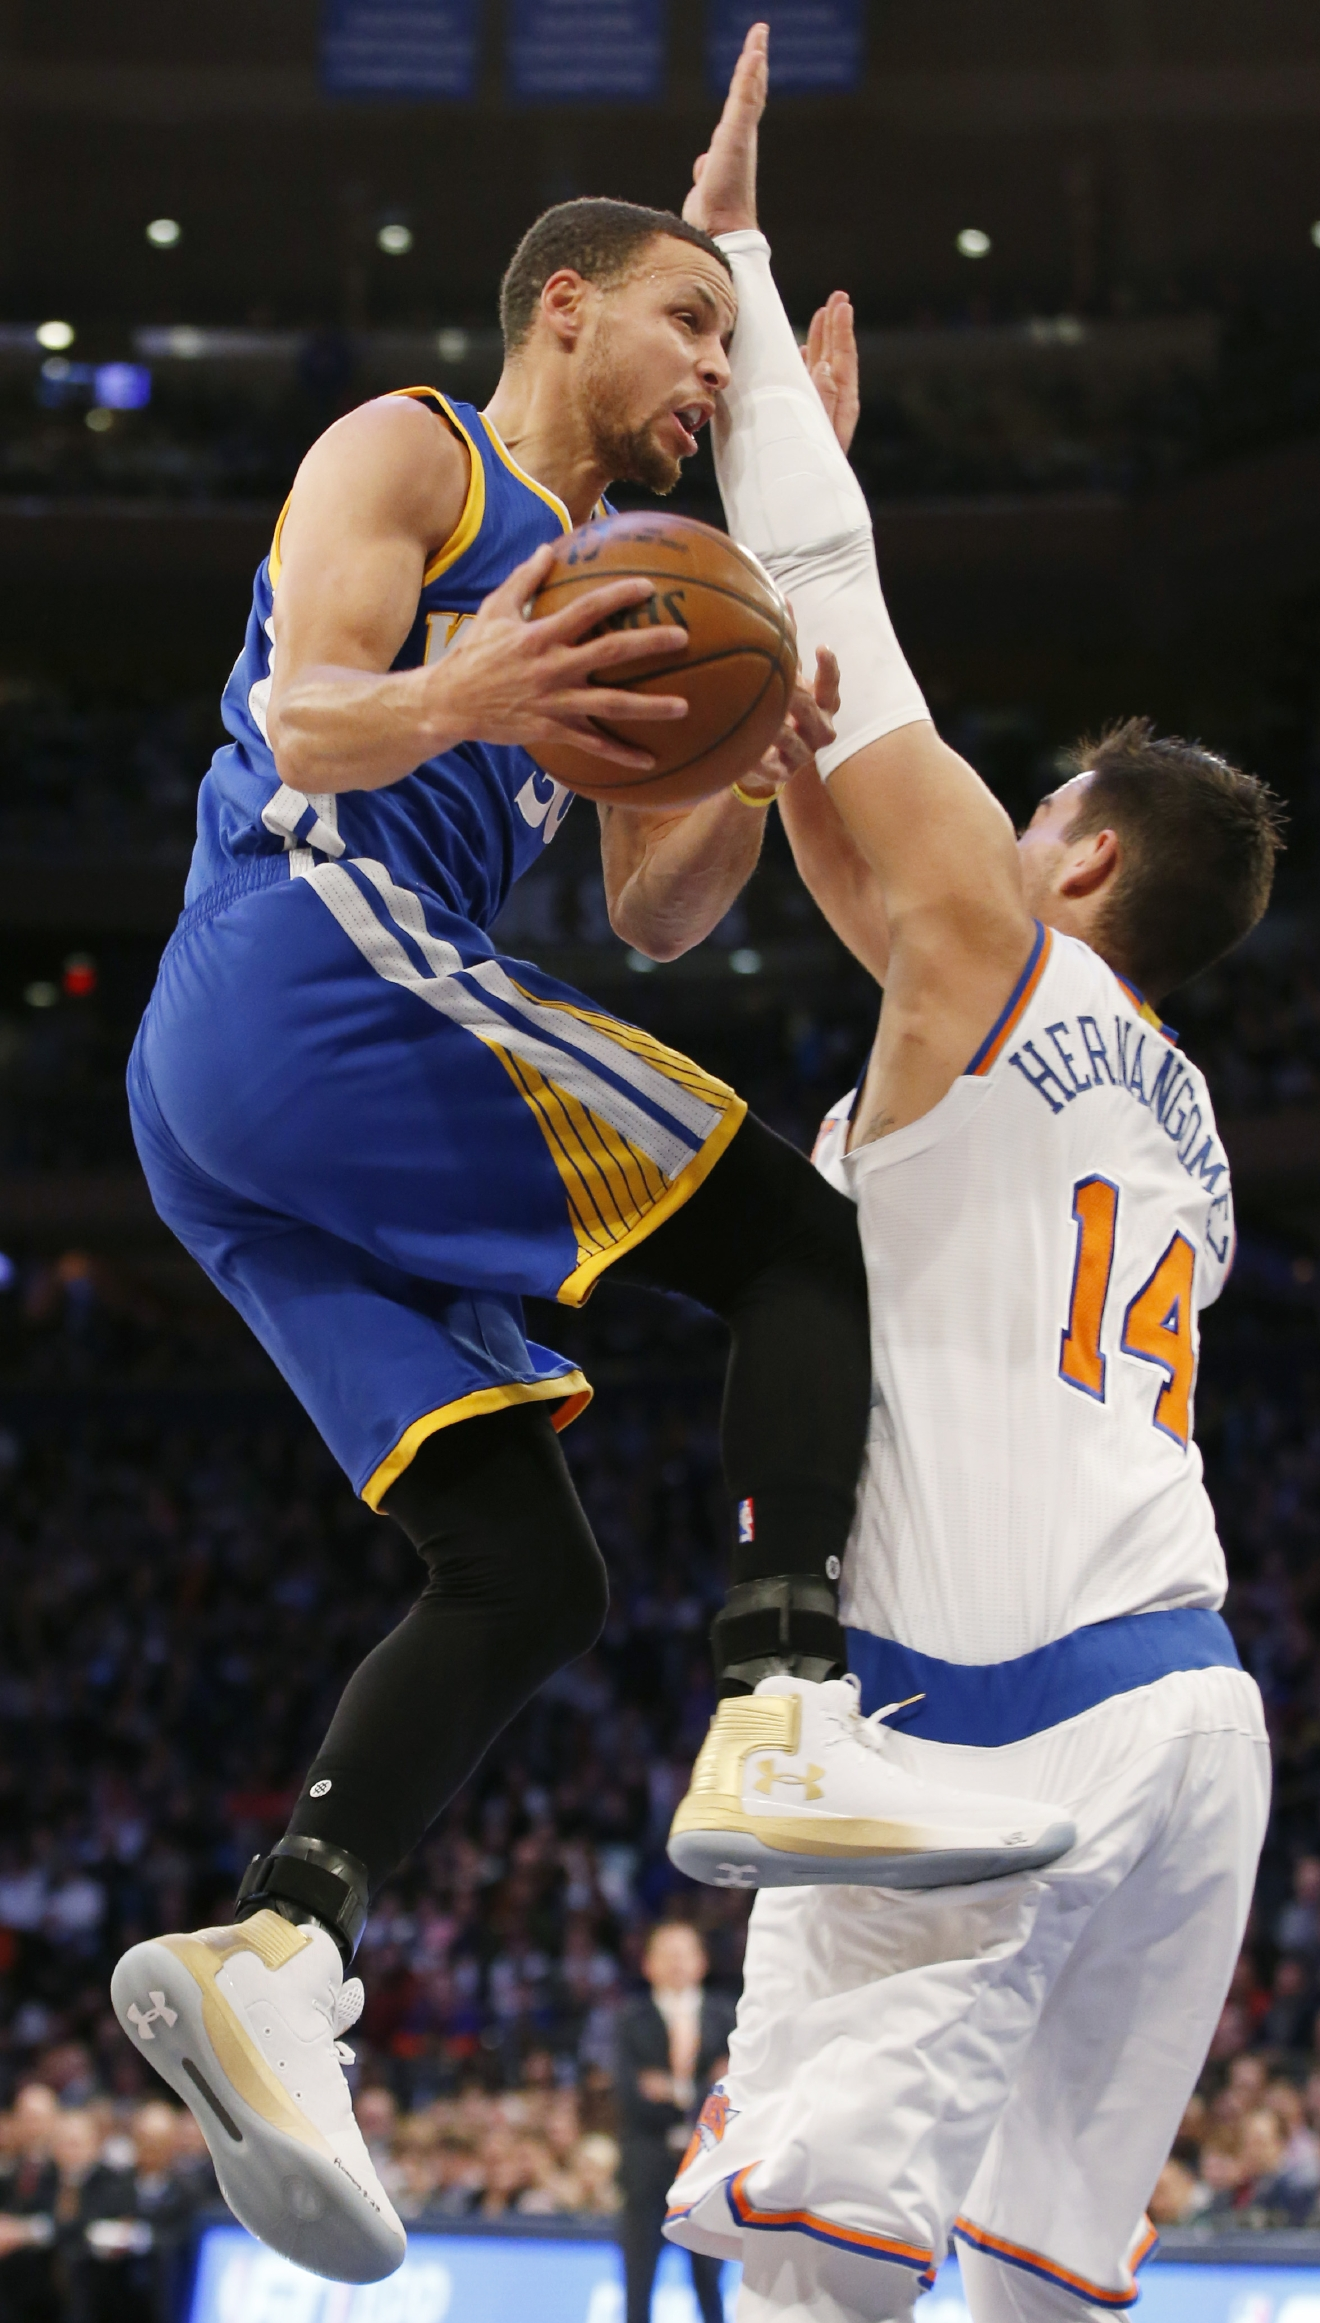 Golden State Warriors guard Stephen Curry, left, bumps into New York Knicks center Willy Hernangomez (14) as he goes up for a layup in the first half of an NBA basketball game at Madison Square Garden in New York, Sunday, March 5, 2017. (AP Photo/Kathy Willens)